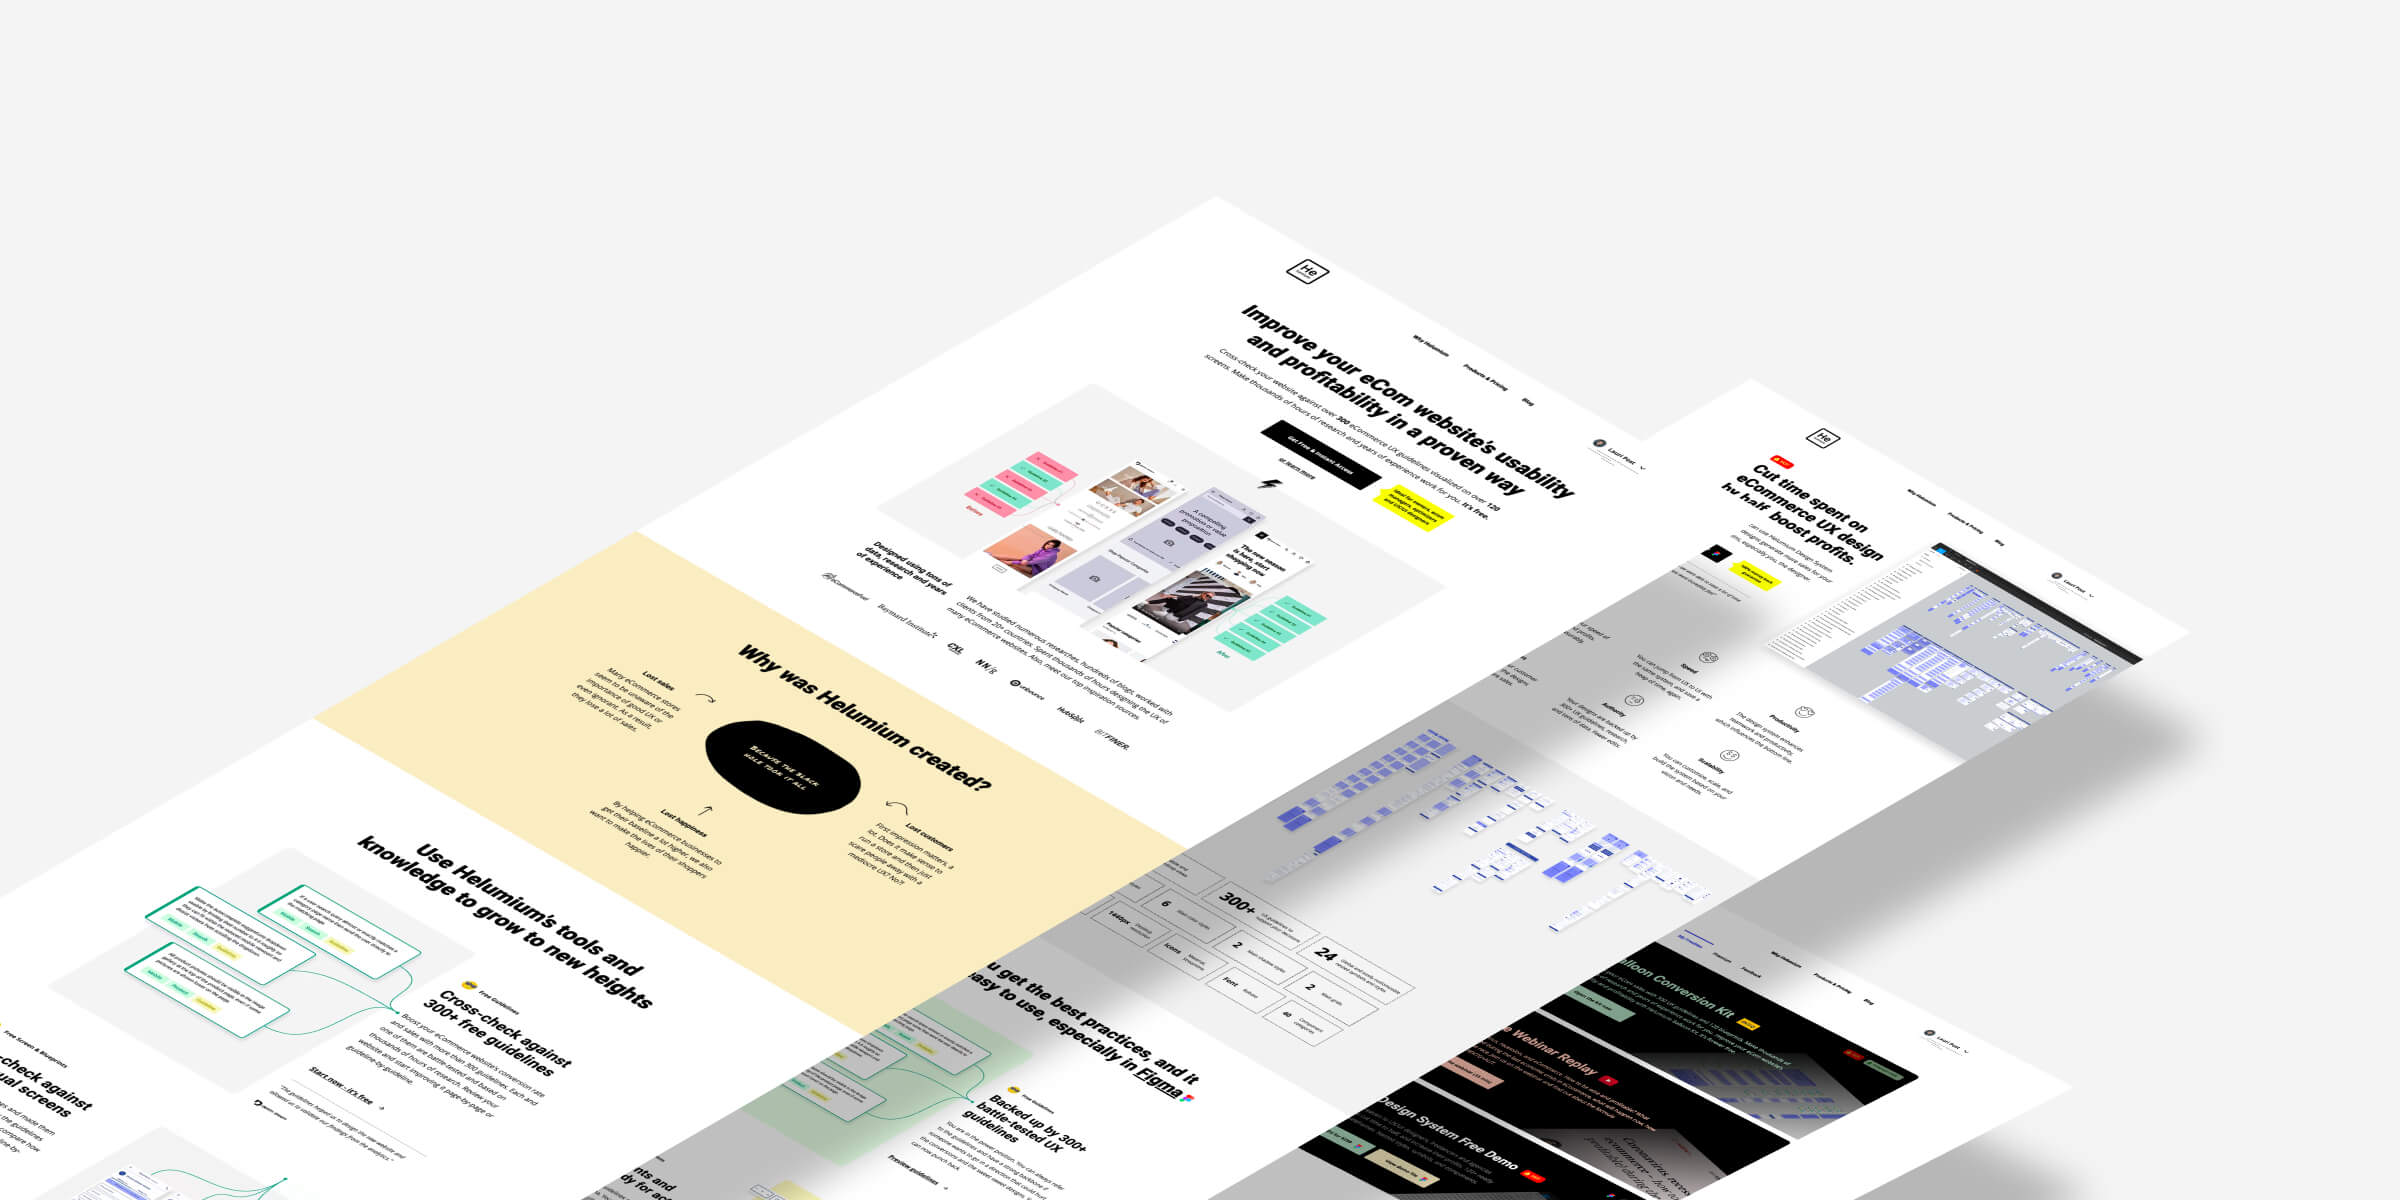 New stuff alert: Helumium's website was just updated and here's what's new